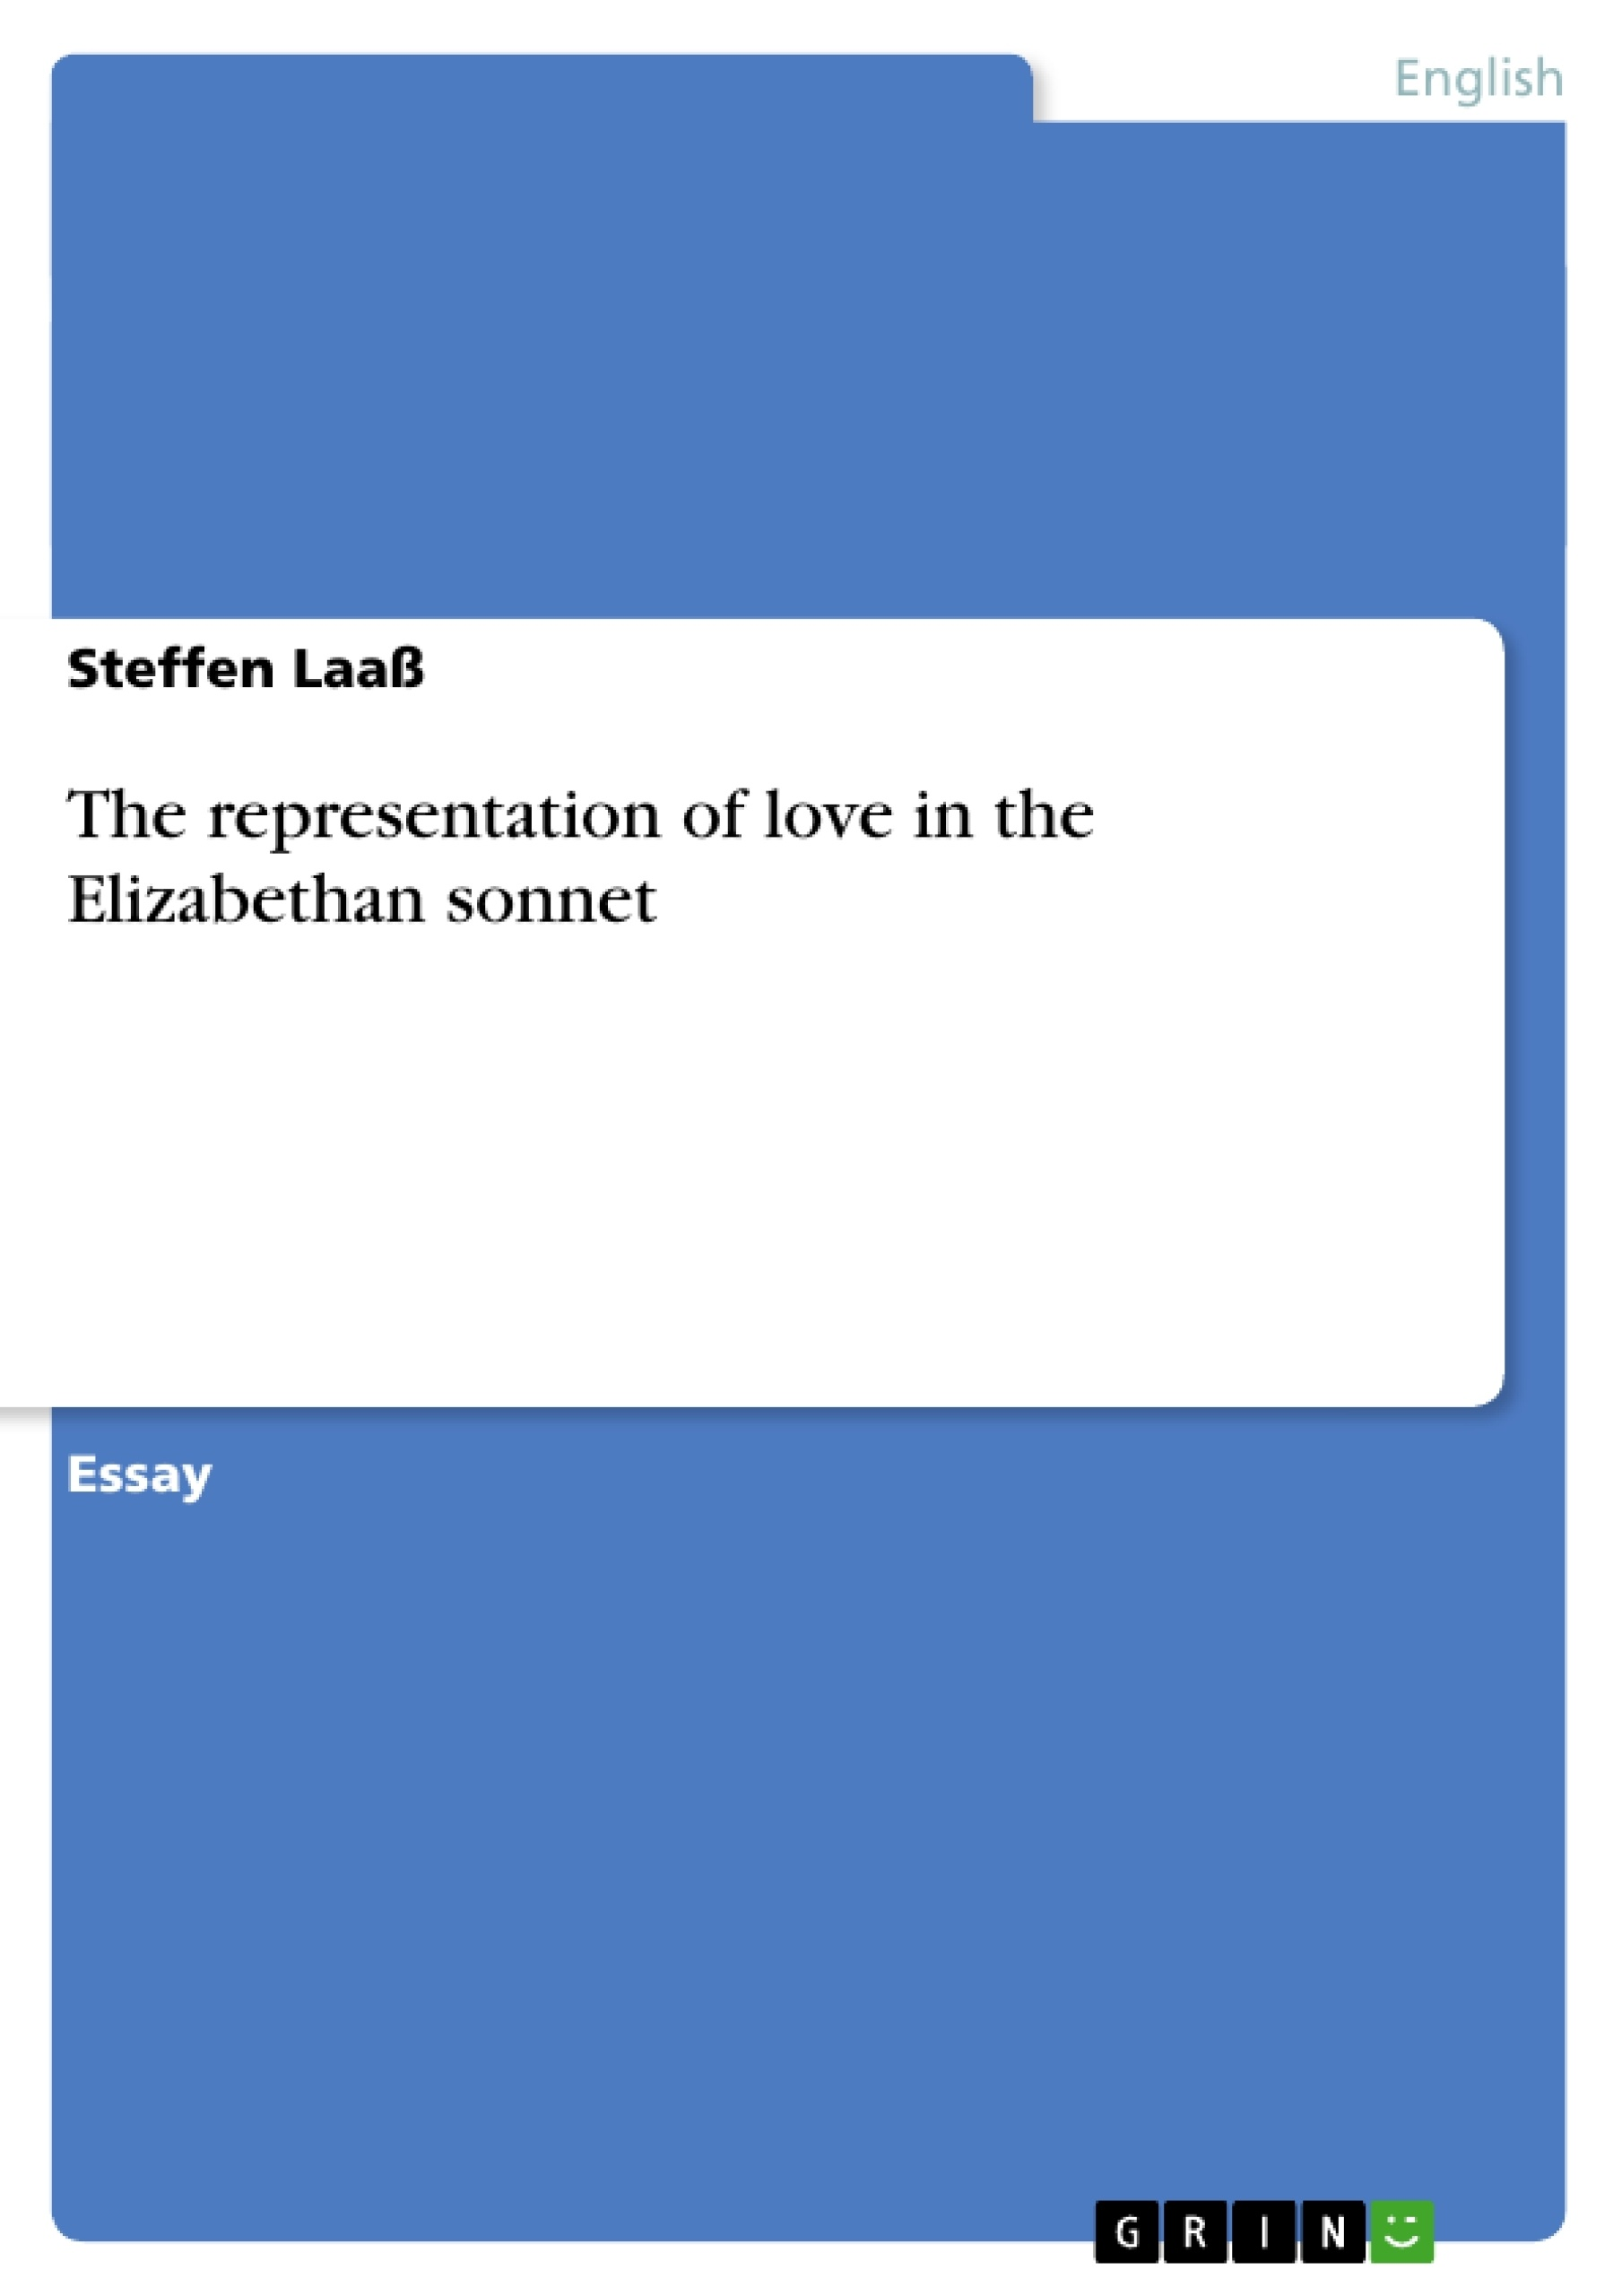 the representation of love in the elizabethan sonnet publish  upload your own papers earn money and win an iphone x